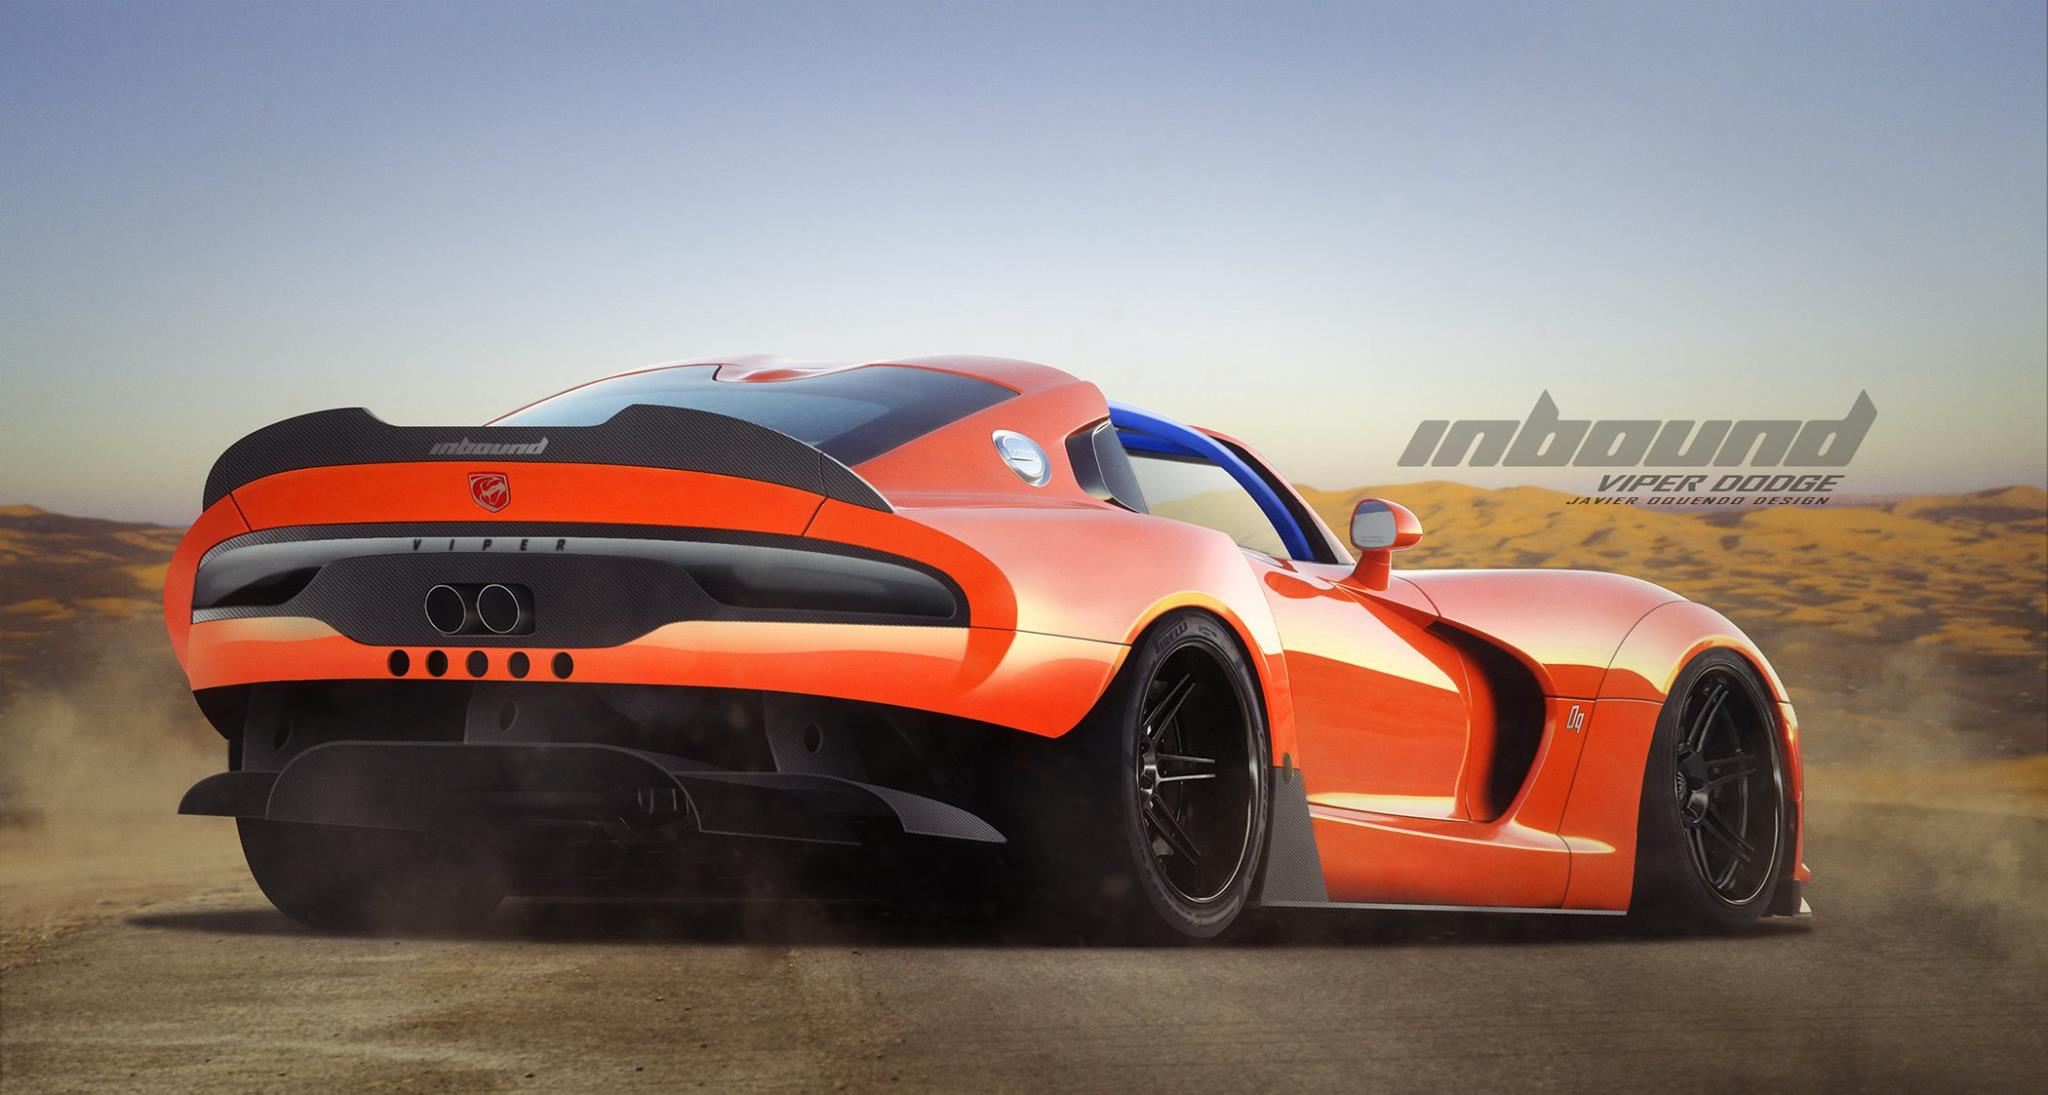 Targa Top Dodge Viper Racer Would Be An Awesome Swansong Autoevolution